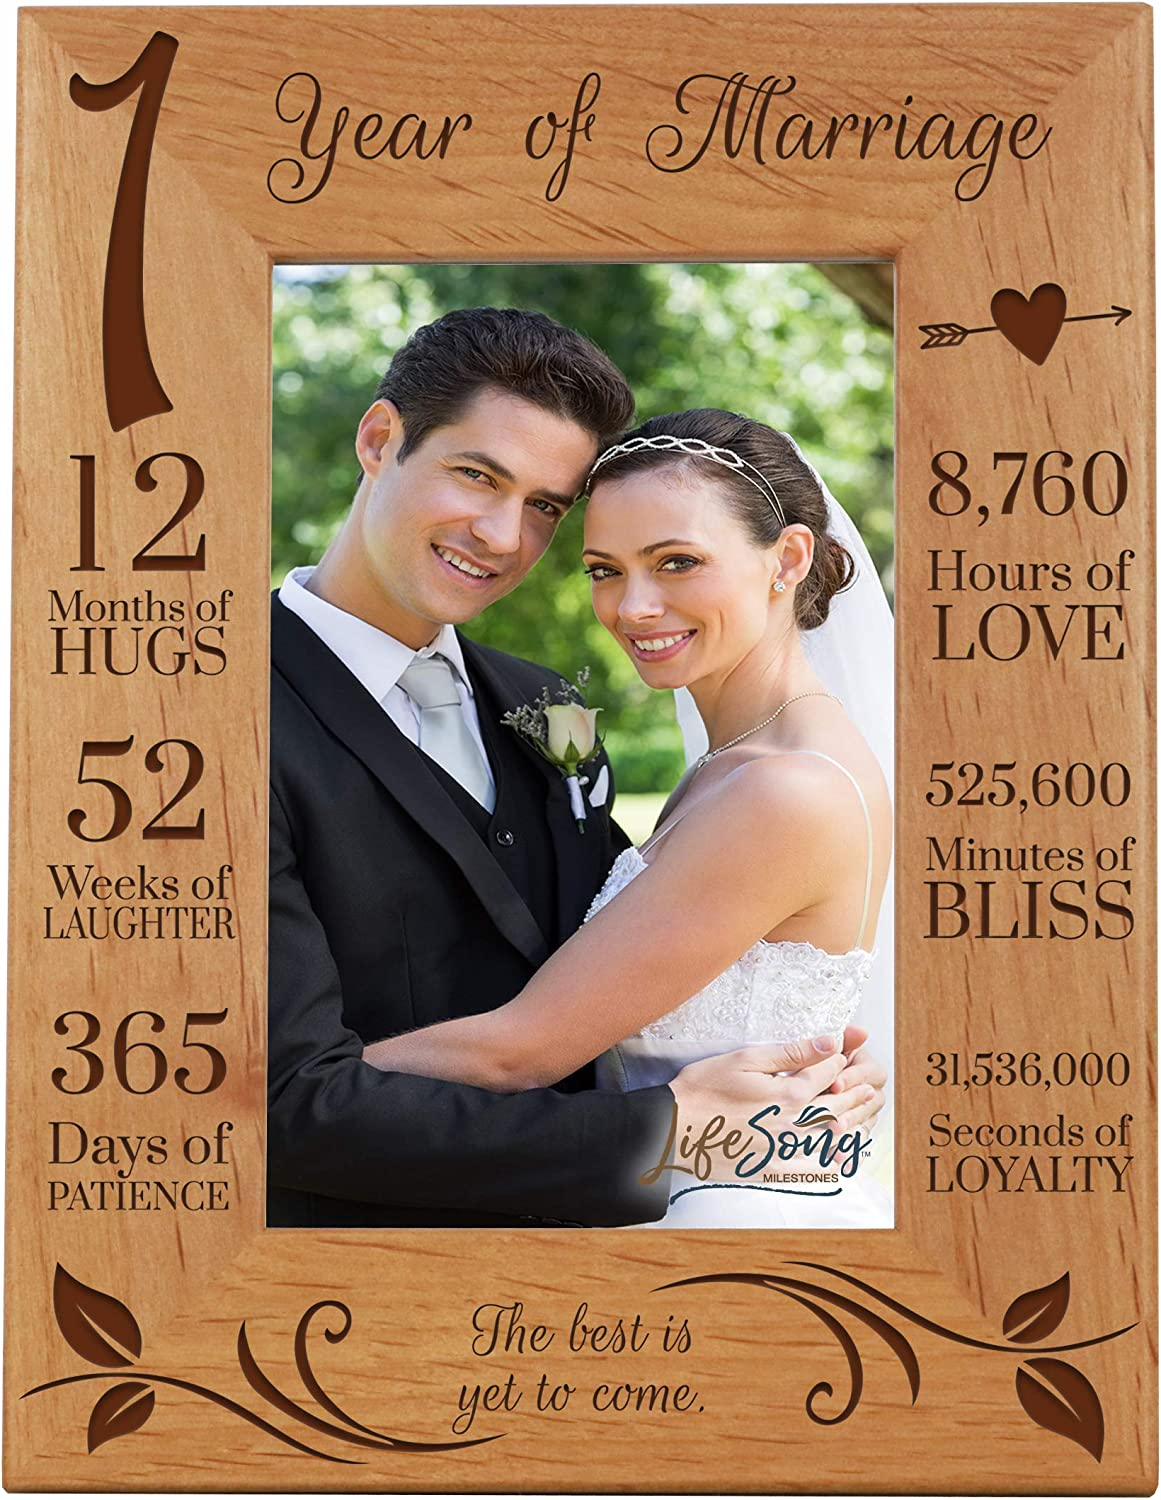 LifeSong Milestones 1st Anniversary Picture Frame 1 Year of Marriage - One Year Wedding Keepsake Gift for Parents Husband Wife him her - The Best is Yet to Come (7.5x9.5)